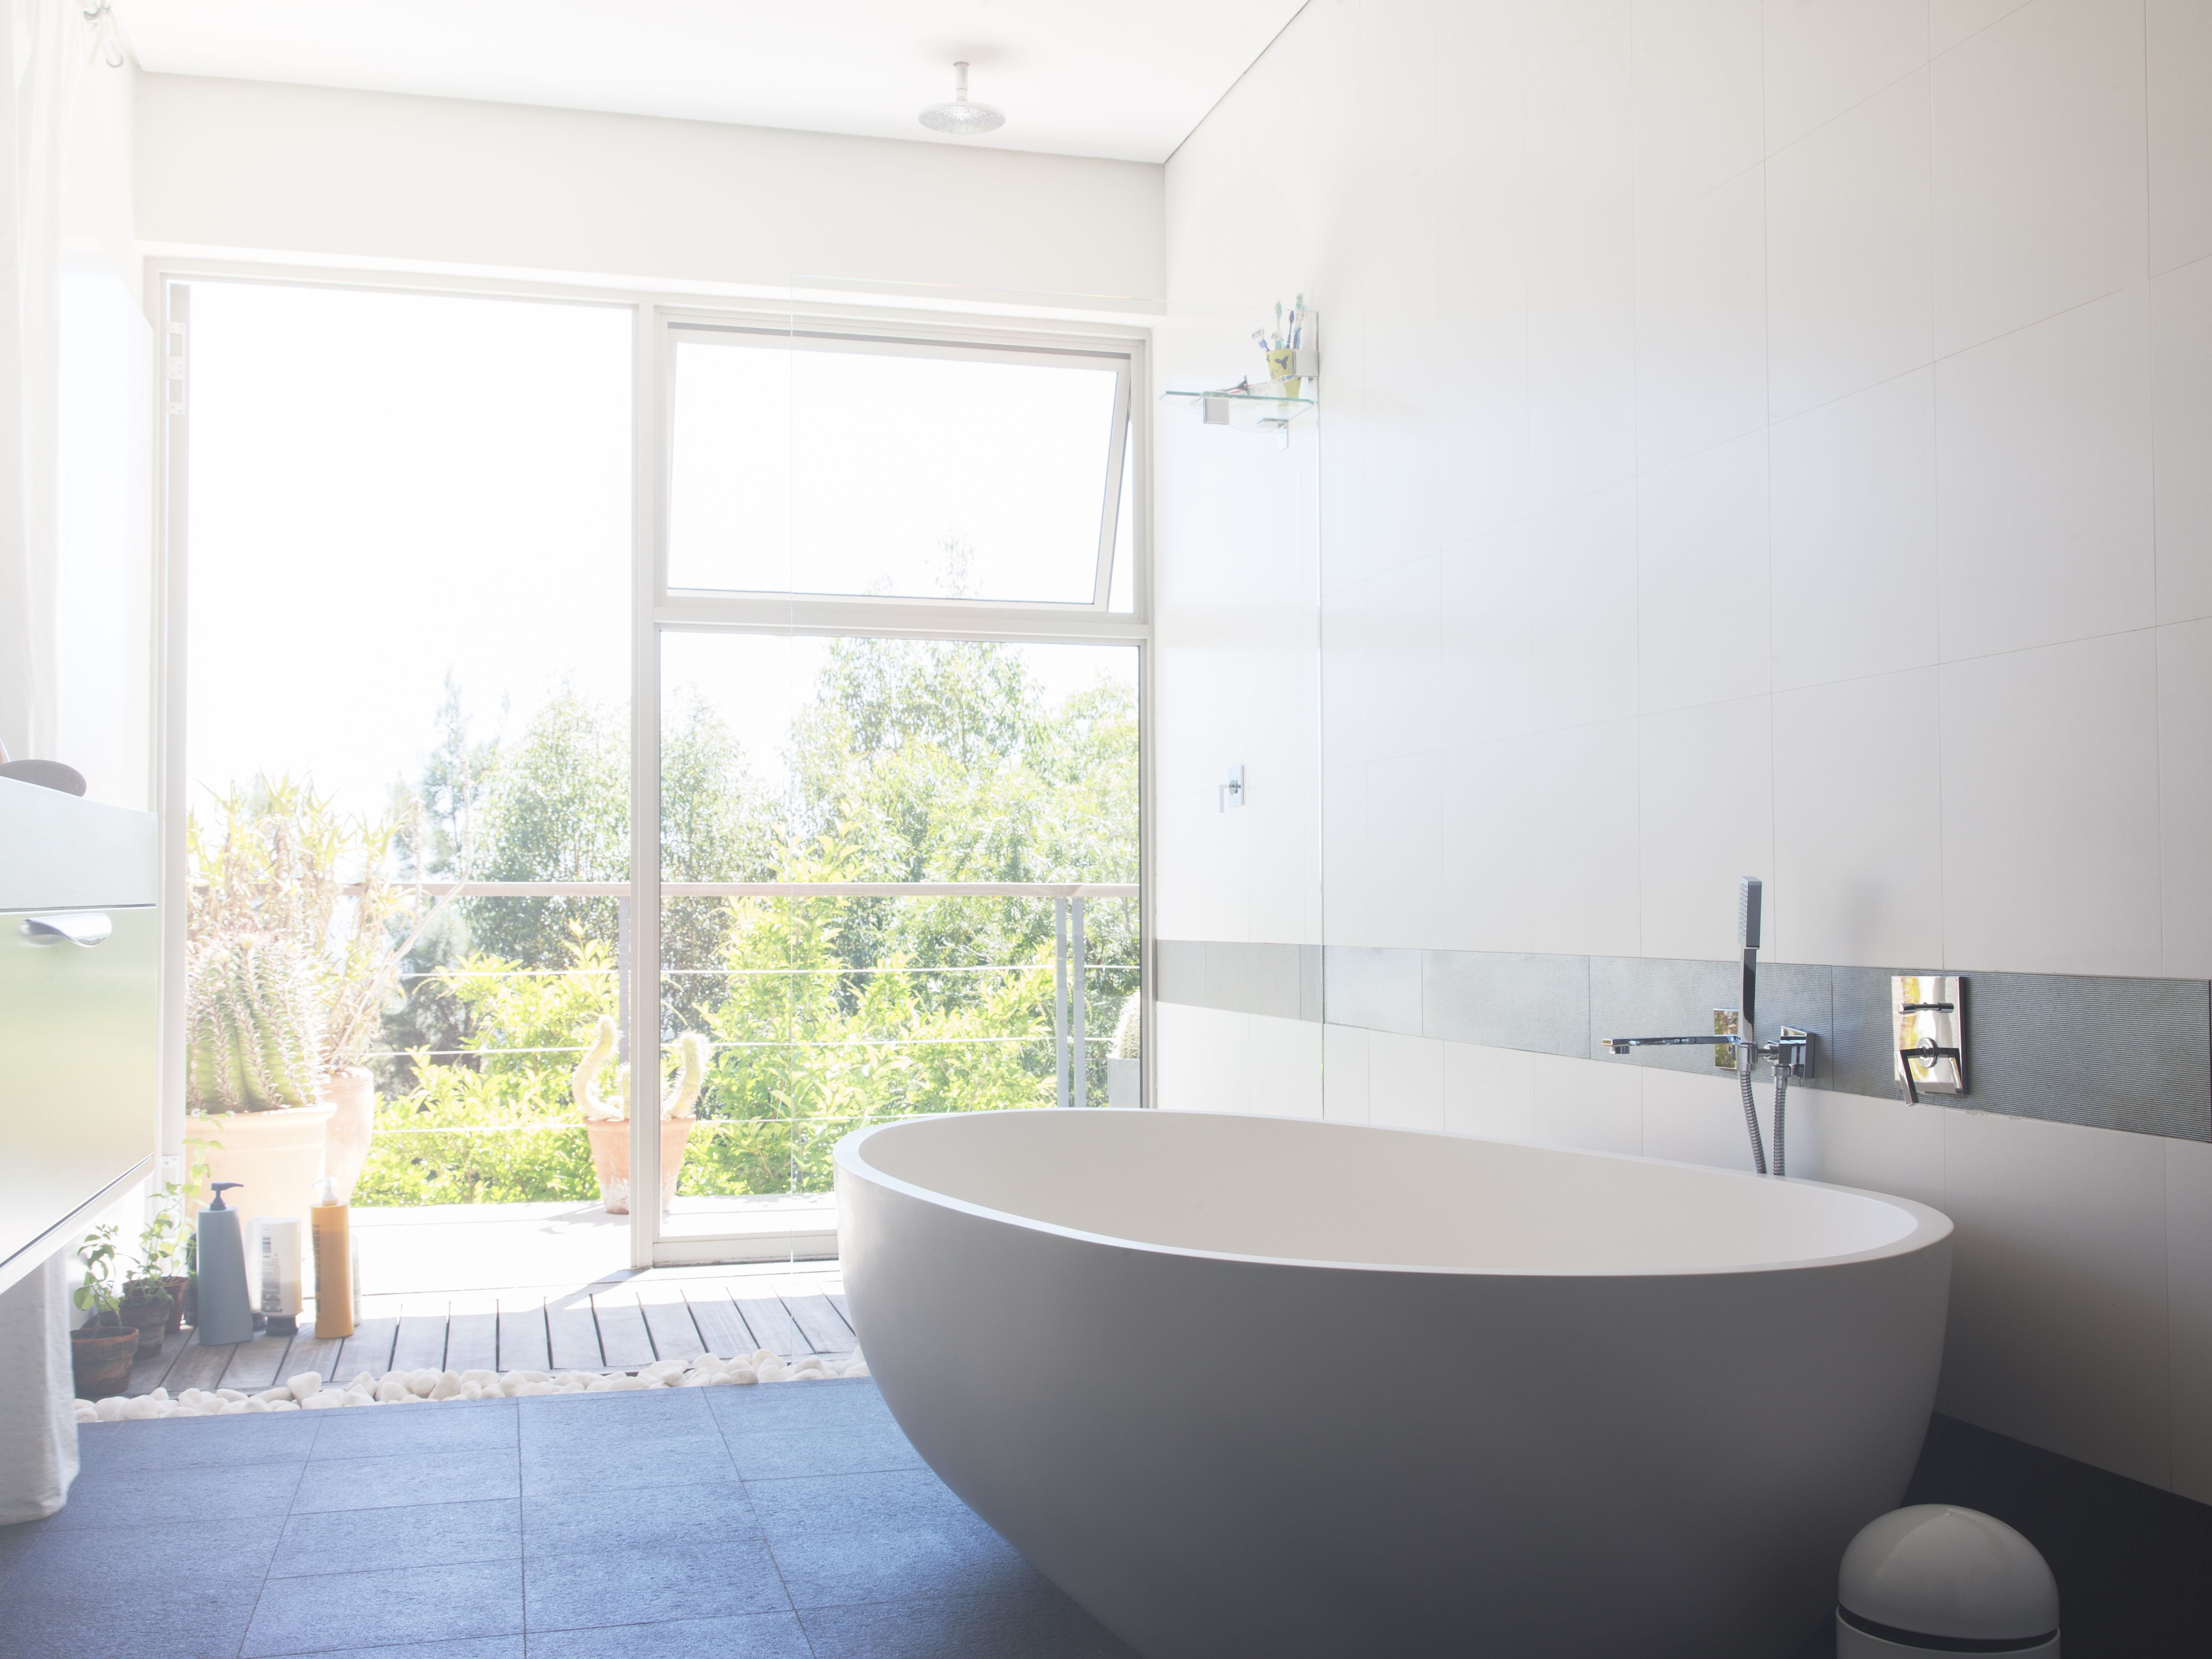 7 diy practical and decorative bathroom ideas.htm 7 feng shui decorating tips for a wealth area bathroom  feng shui decorating tips for a wealth